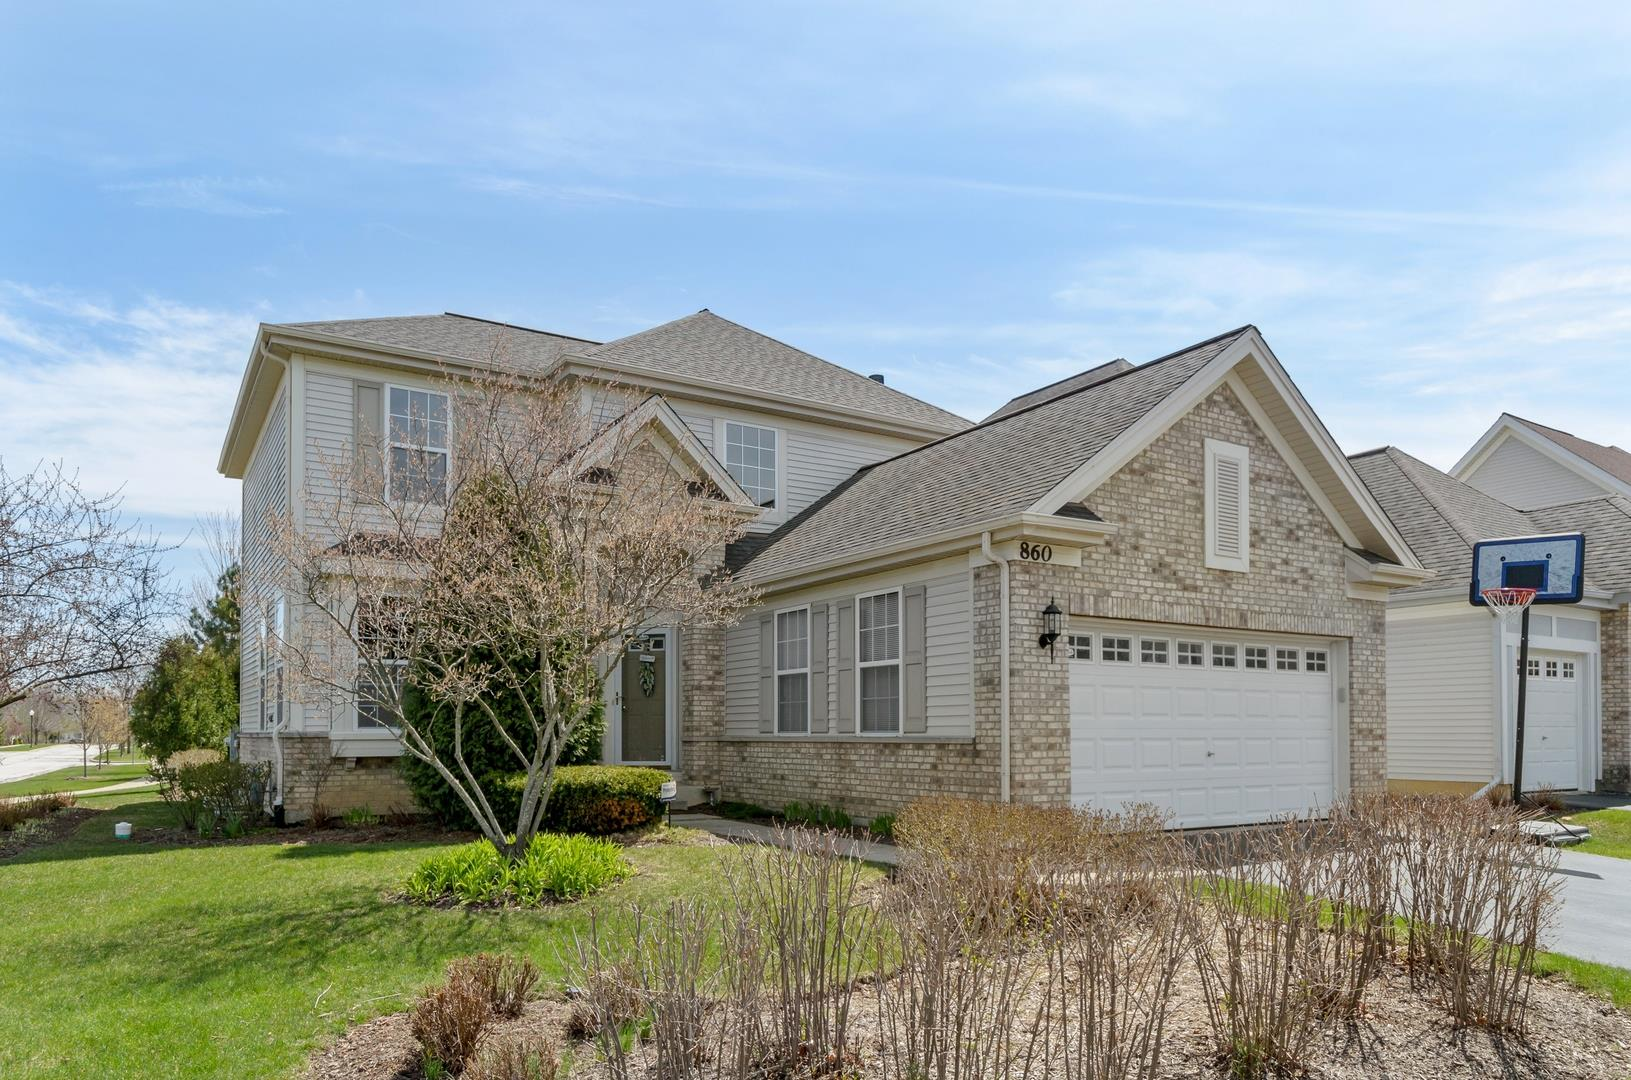 860 PETER Court, Indian Creek, IL 60061 - #: 10697021